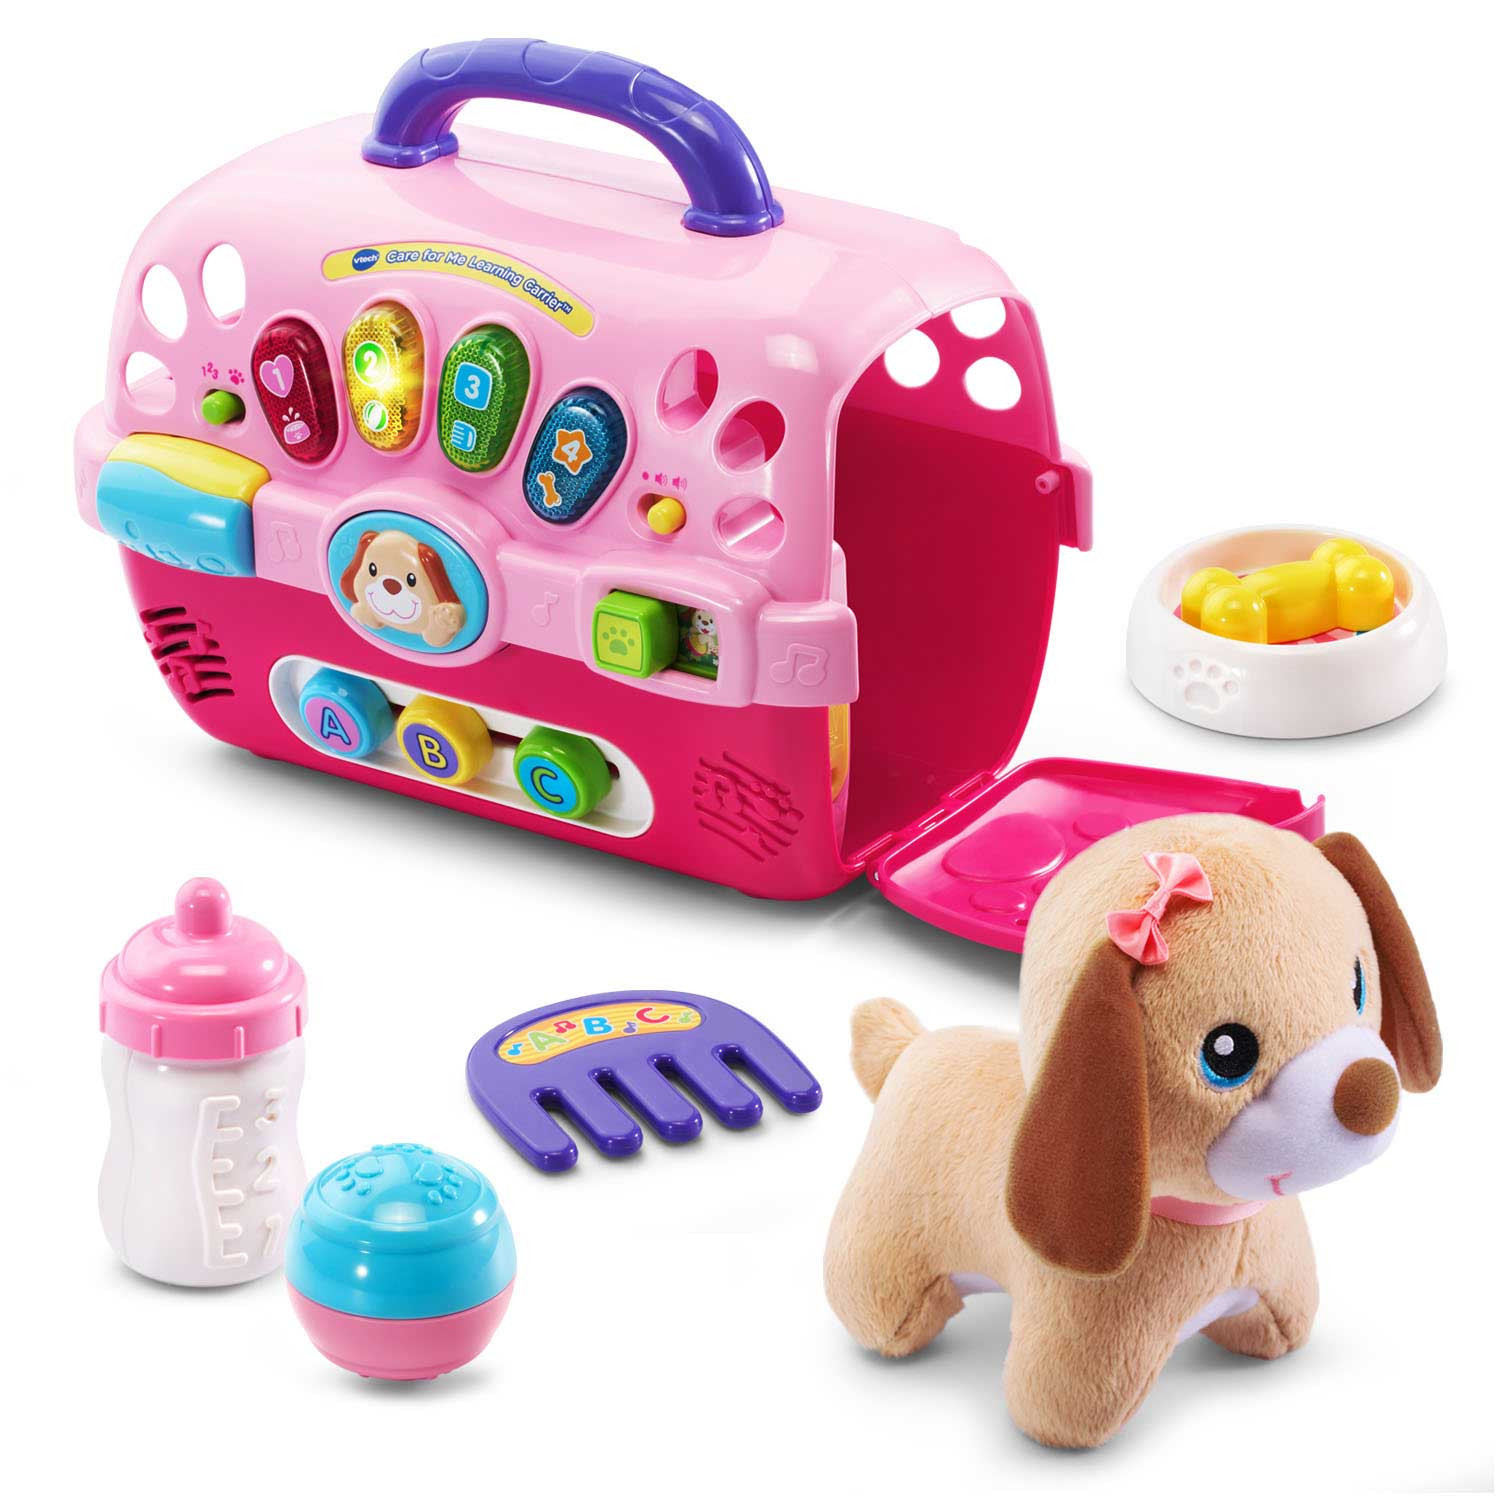 Best ideas about Gift Ideas For 3 Year Old Baby Girl . Save or Pin VTech Adds Exciting New Products to Award Winning Baby Now.